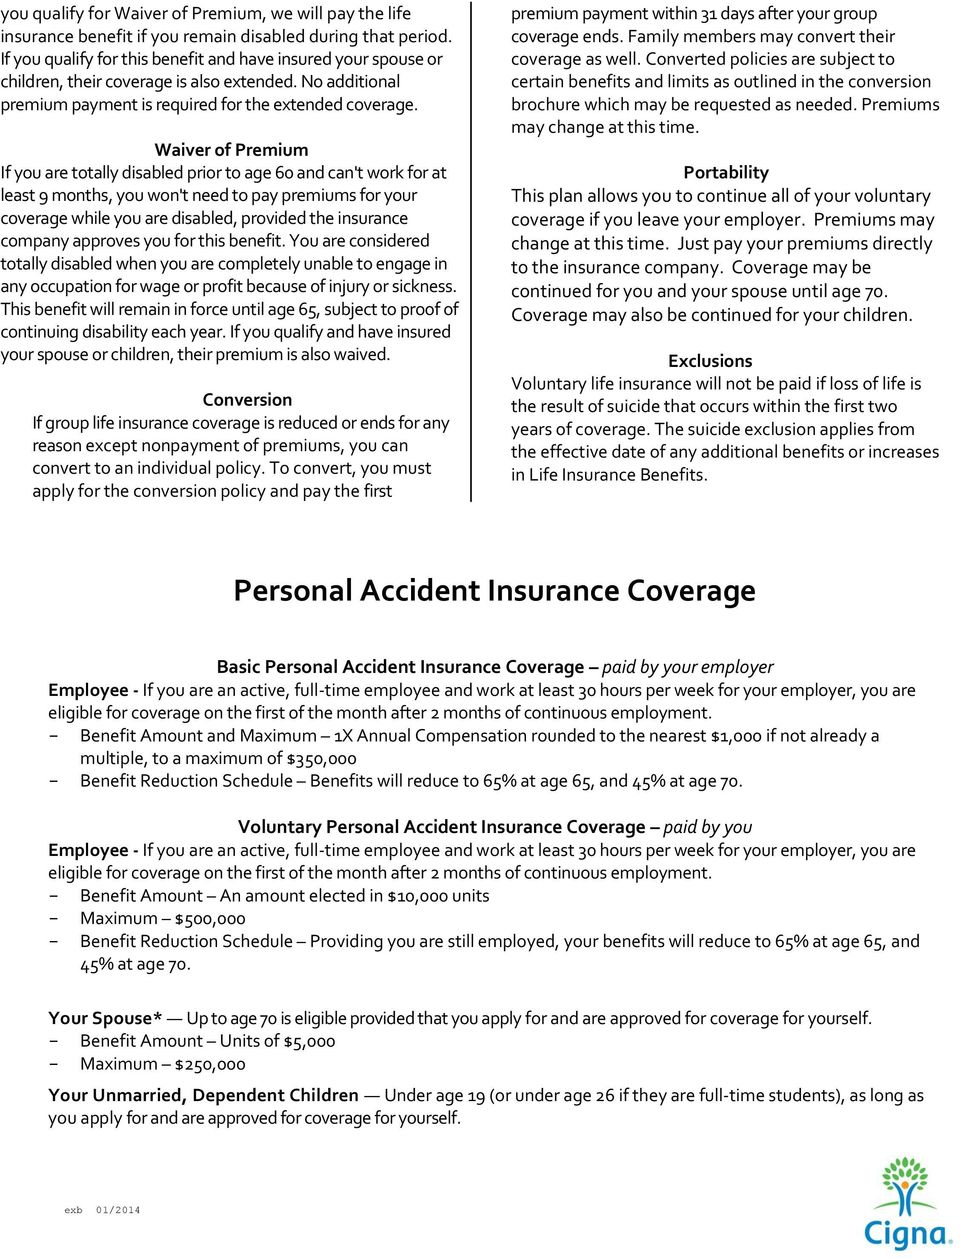 Waiver of Premium If you are totally disabled prior to age 60 and can't work for at least 9 months, you won't need to pay premiums for your coverage while you are disabled, provided the insurance